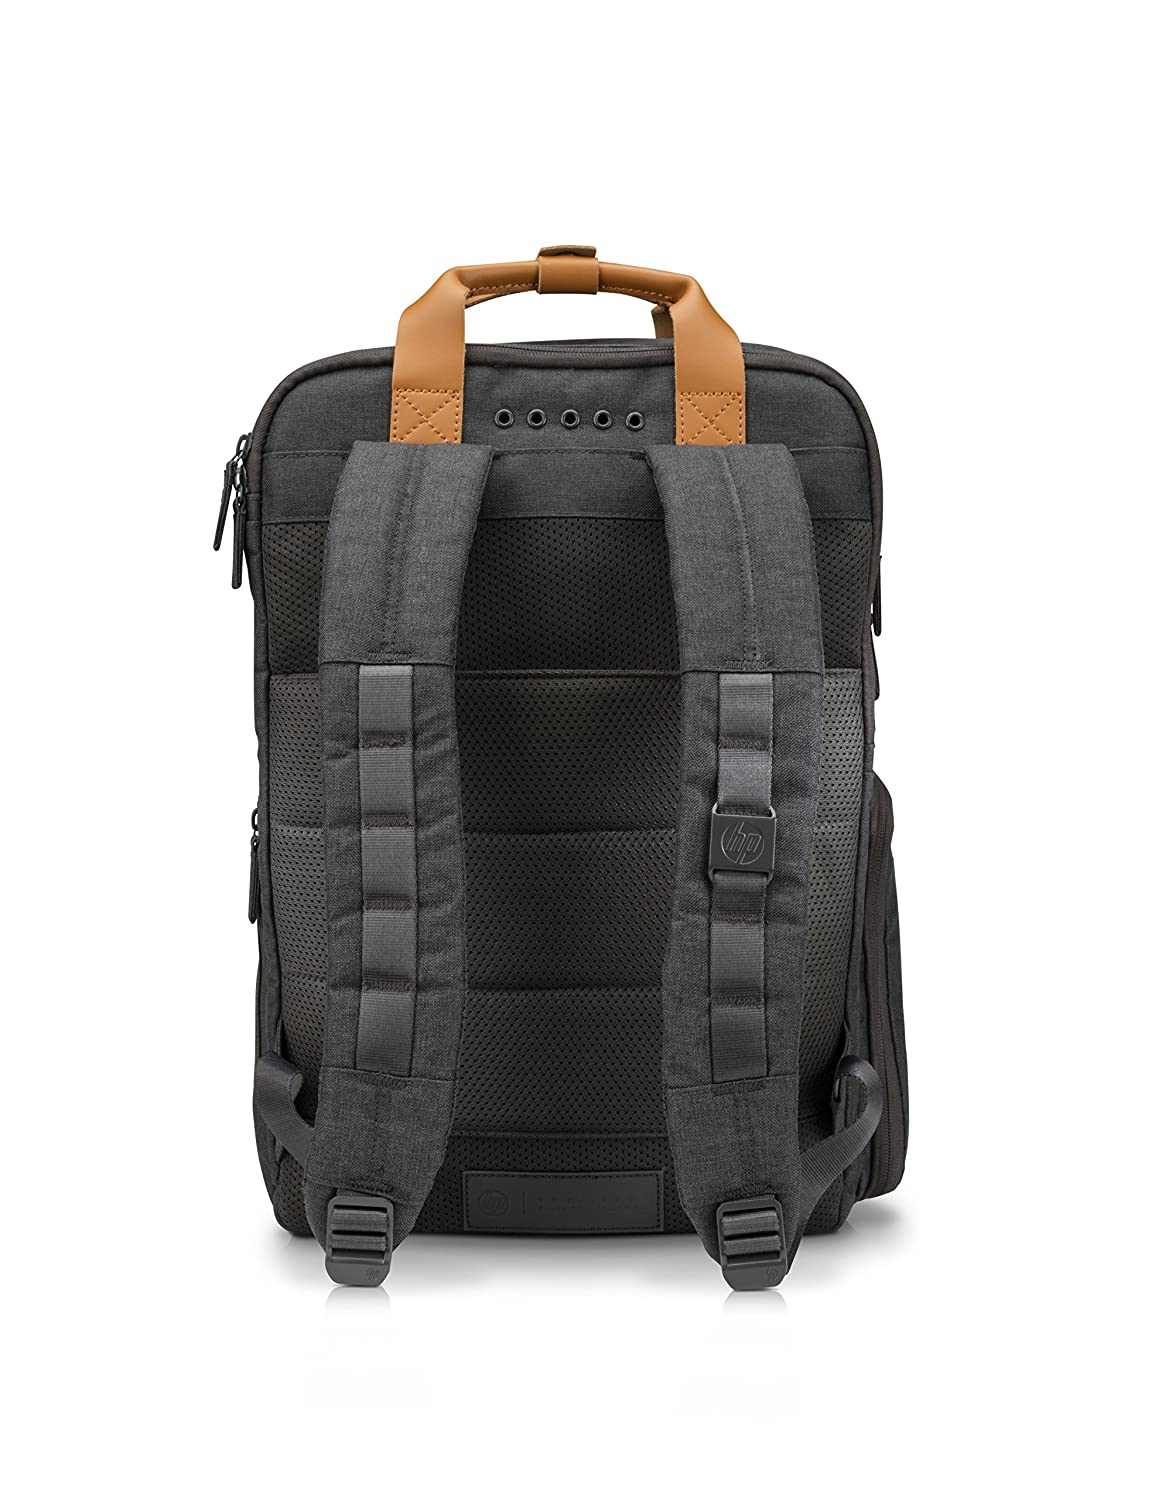 Hp 17 Inch Laptop Canvas Backpack With 22400 Mah Battery Charging Razer Utility Black Specifications